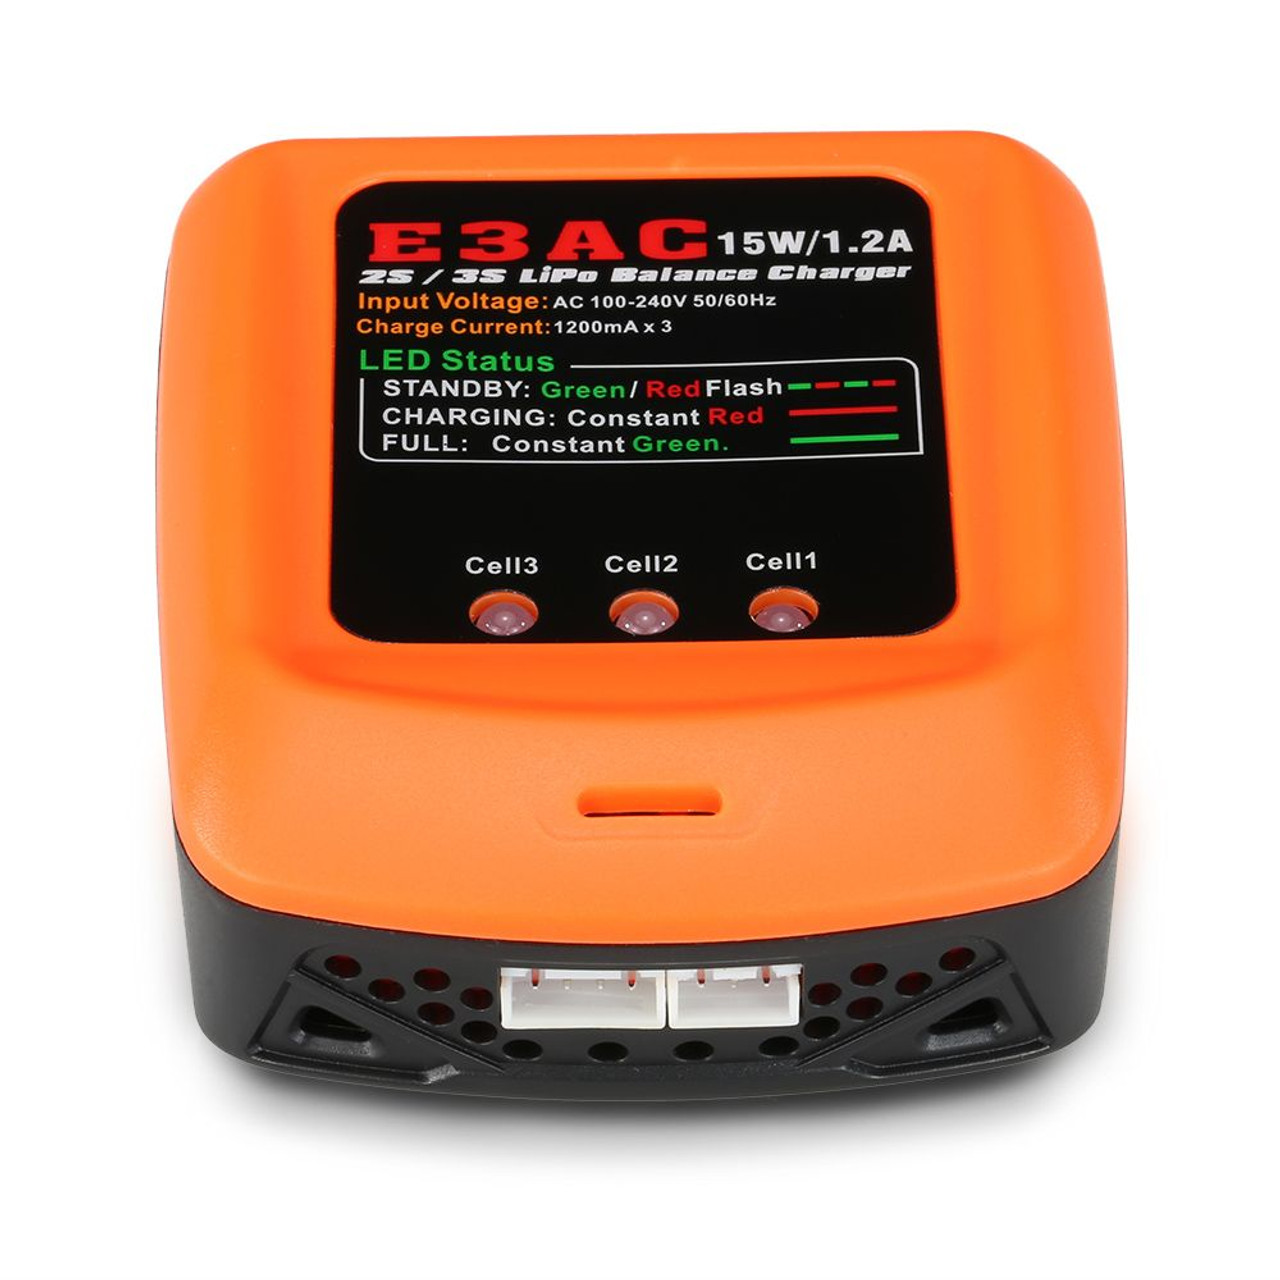 CE3AC 15W/1.2A  LiPo Balance Charger for 2S/3S LiPo Battery